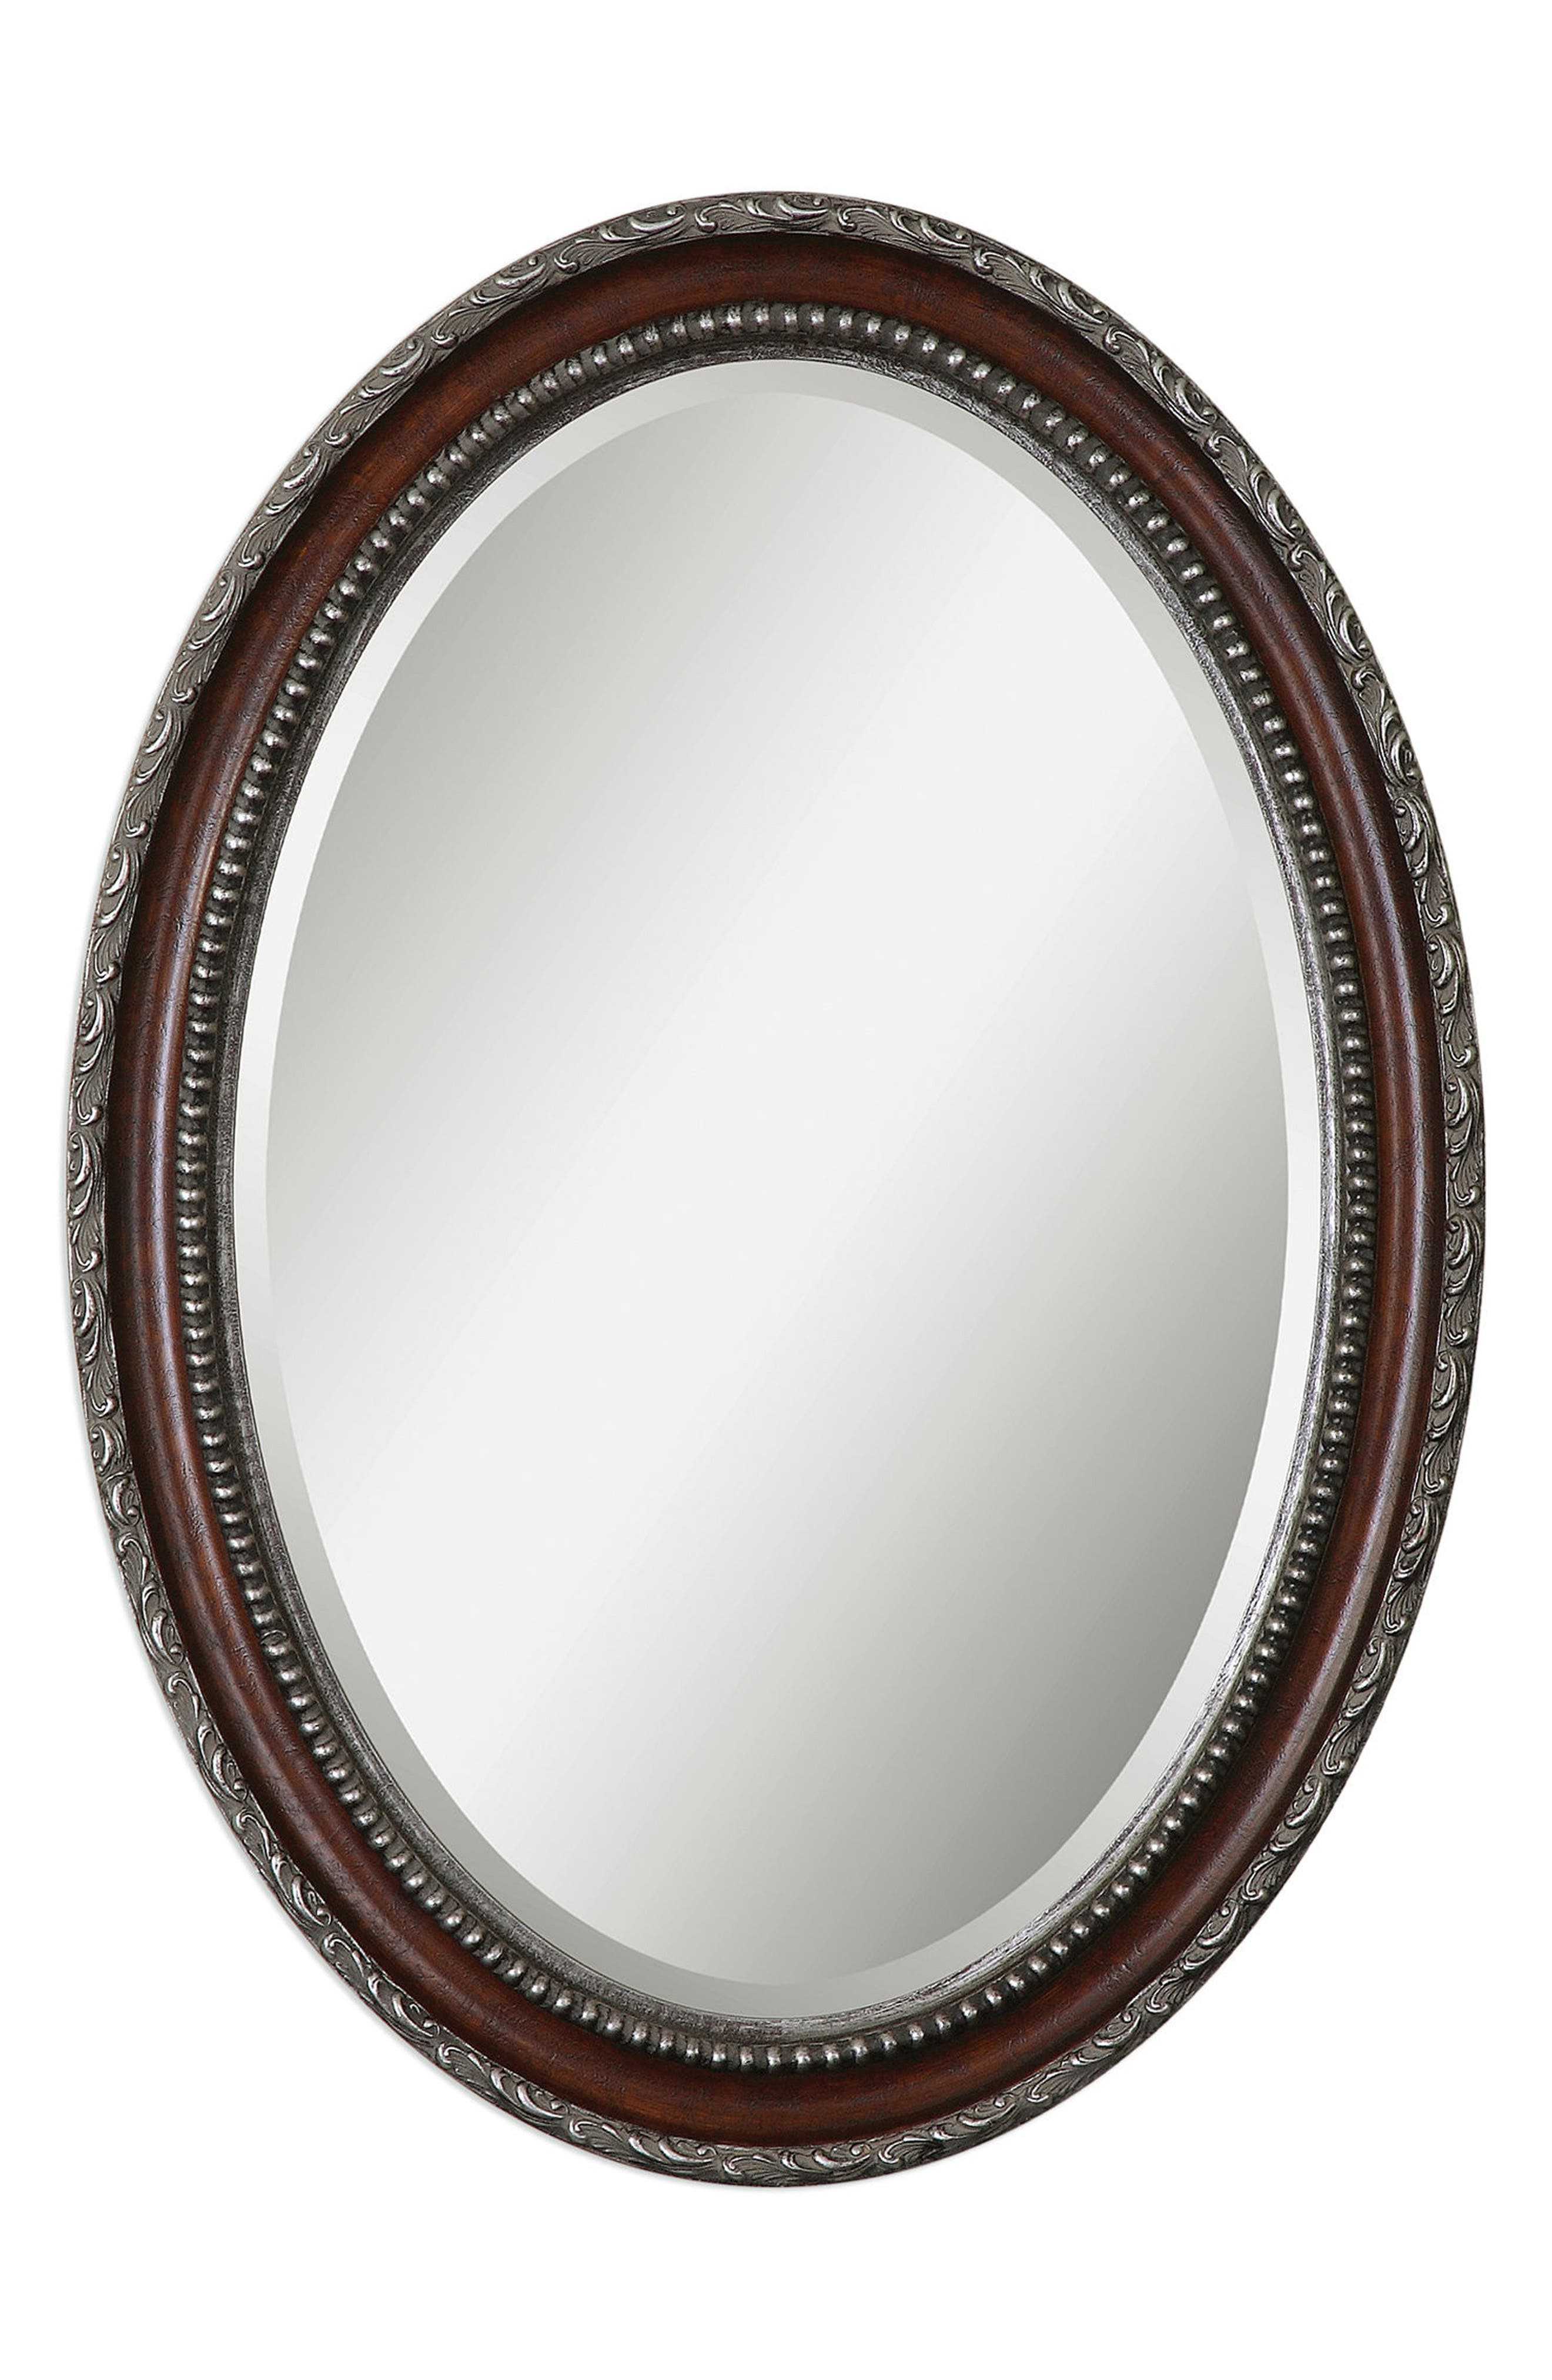 Montrose Oval Wall Mirror,                         Main,                         color, Brown